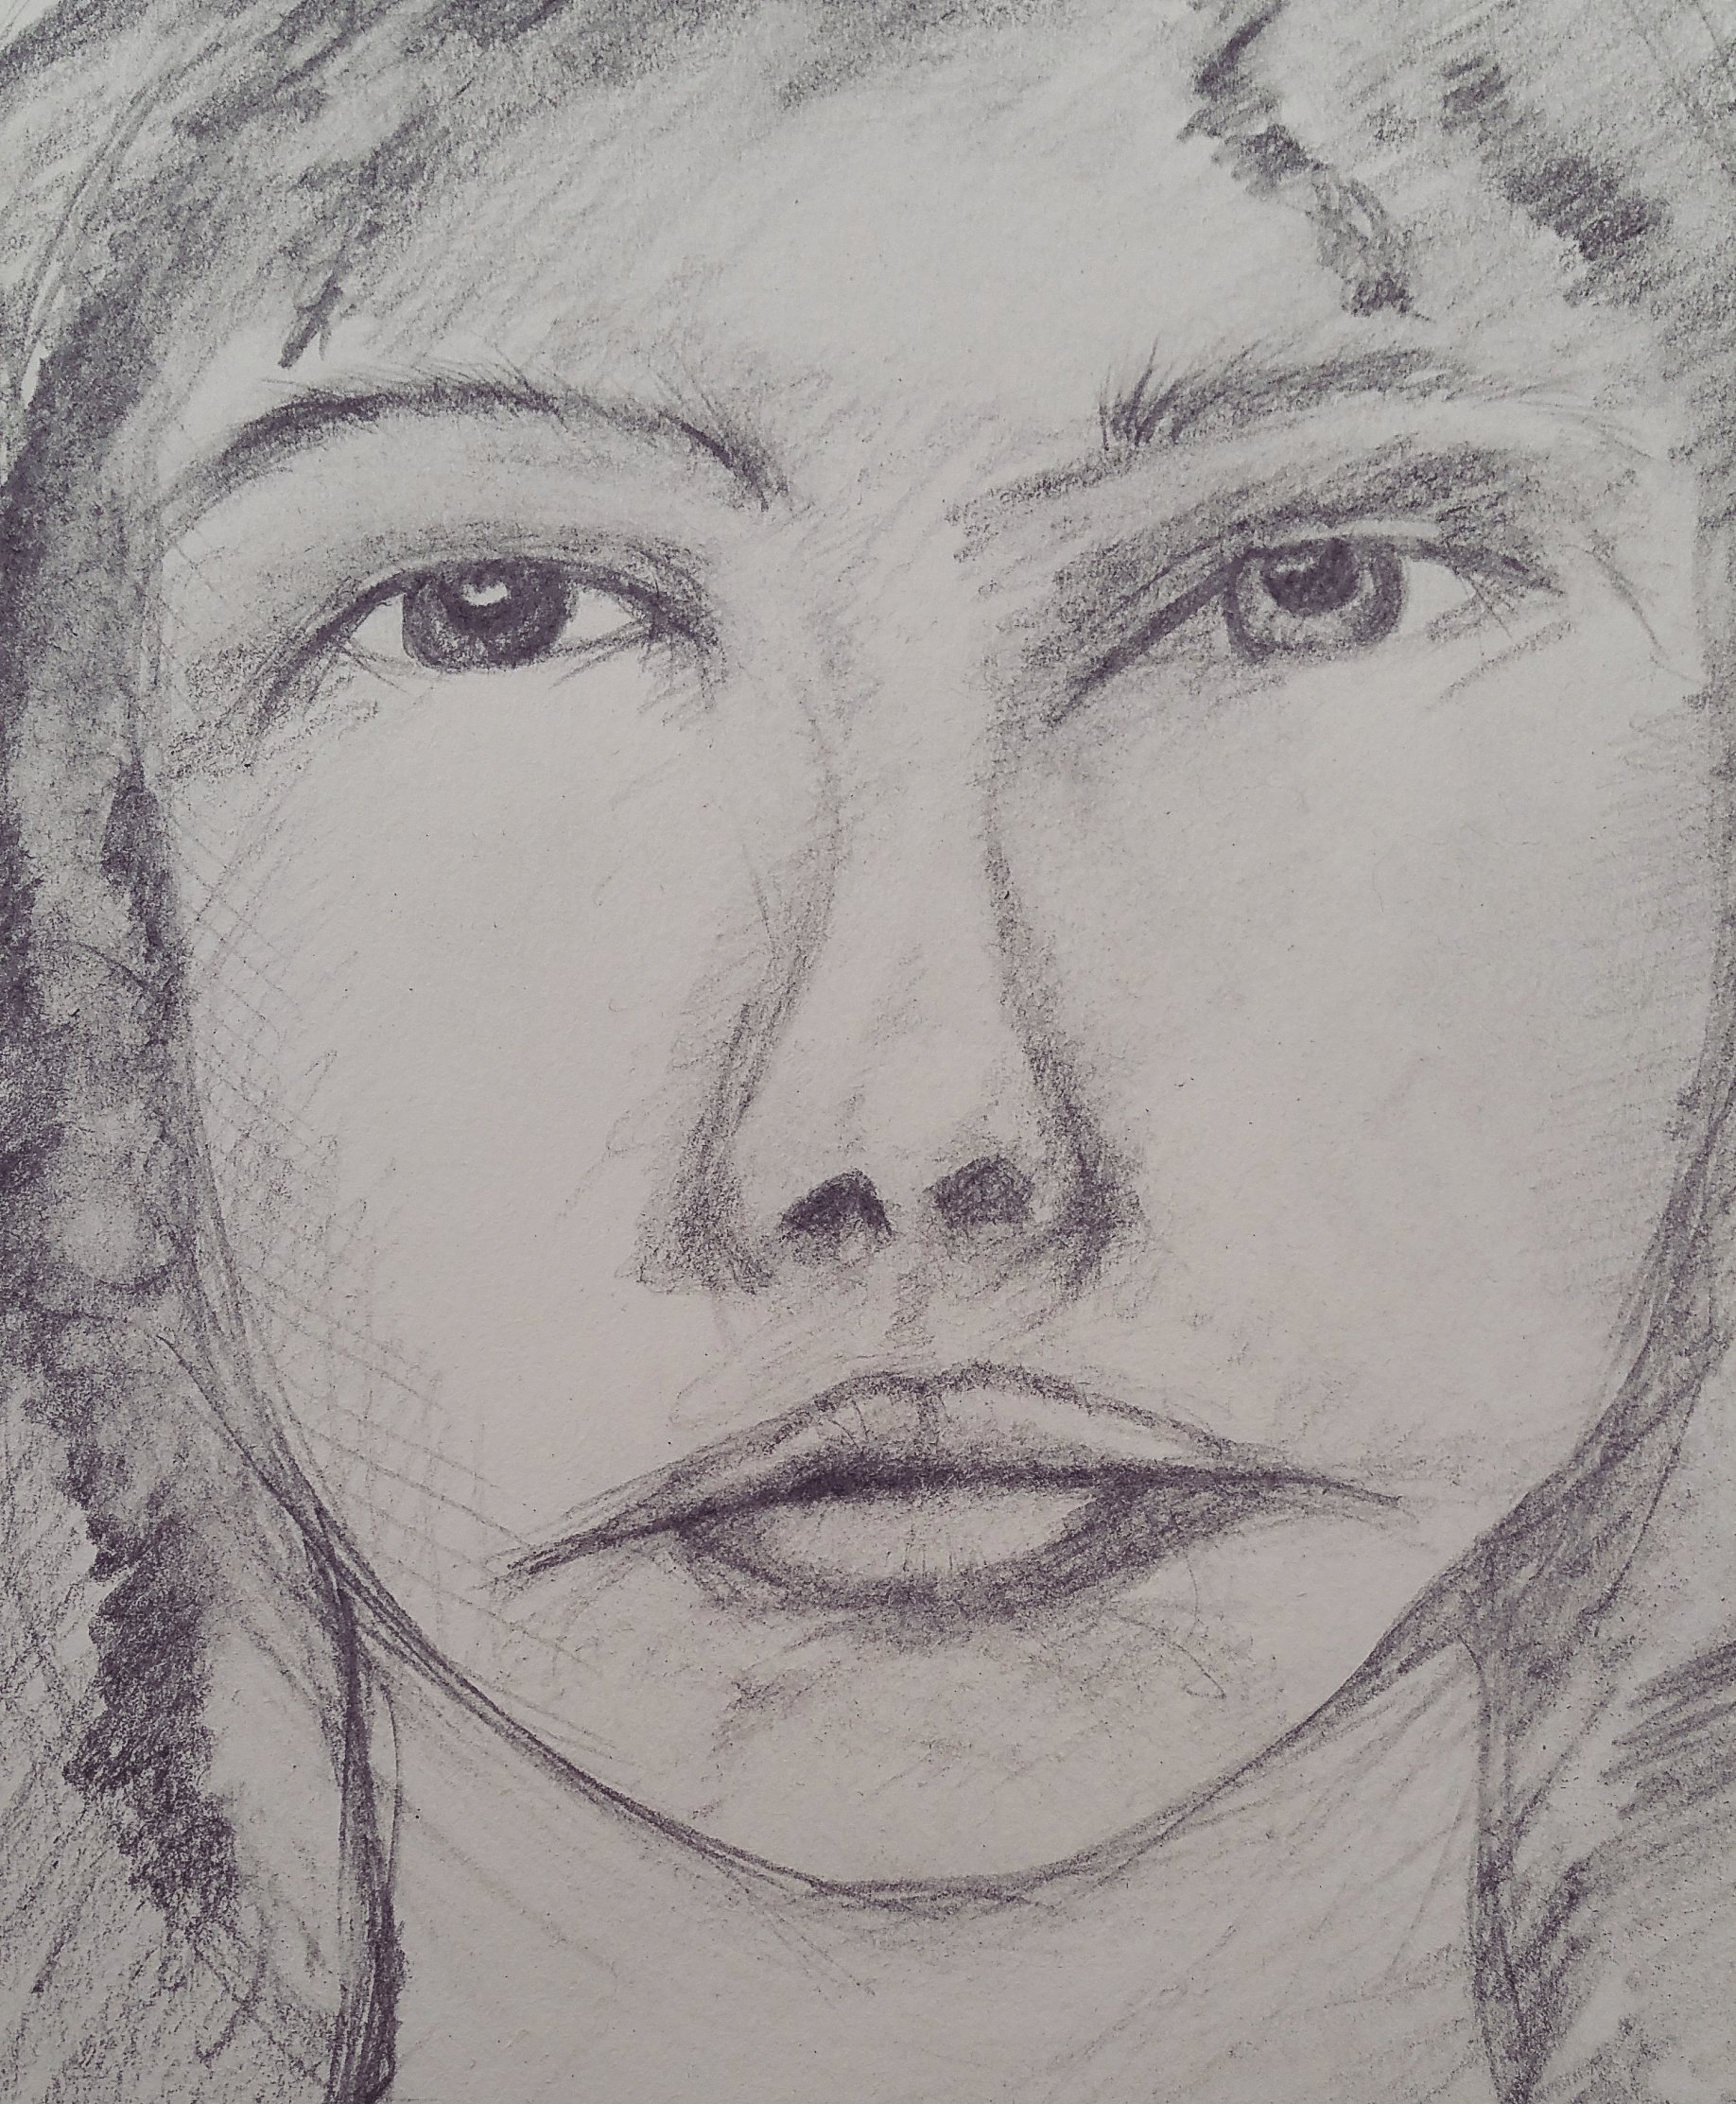 Day Four - Daily Portrait